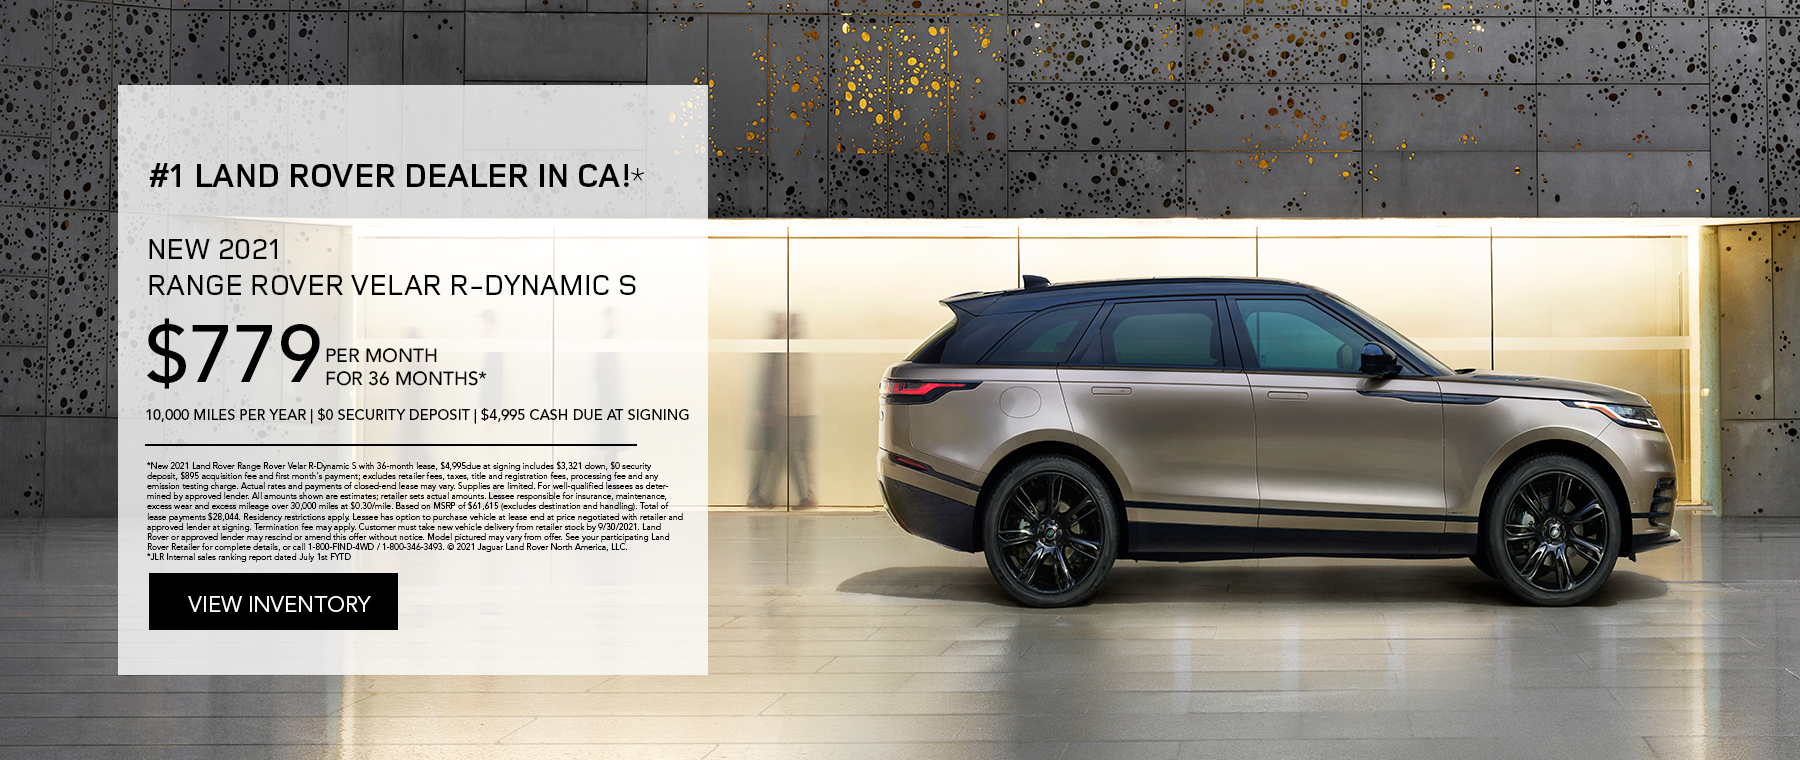 NEW 2021 RANGE ROVER VELAR R-DYNAMIC S. $779 PER MONTH. 36 MONTH LEASE TERM. $4,995 CASH DUE AT SIGNING. $0 SECURITY DEPOSIT. 10,000 MILES PER YEAR. EXCLUDES RETAILER FEES, TAXES, TITLE AND REGISTRATION FEES, PROCESSING FEE AND ANY EMISSION TESTING CHARGE. OFFER ENDS 9/30/2021.